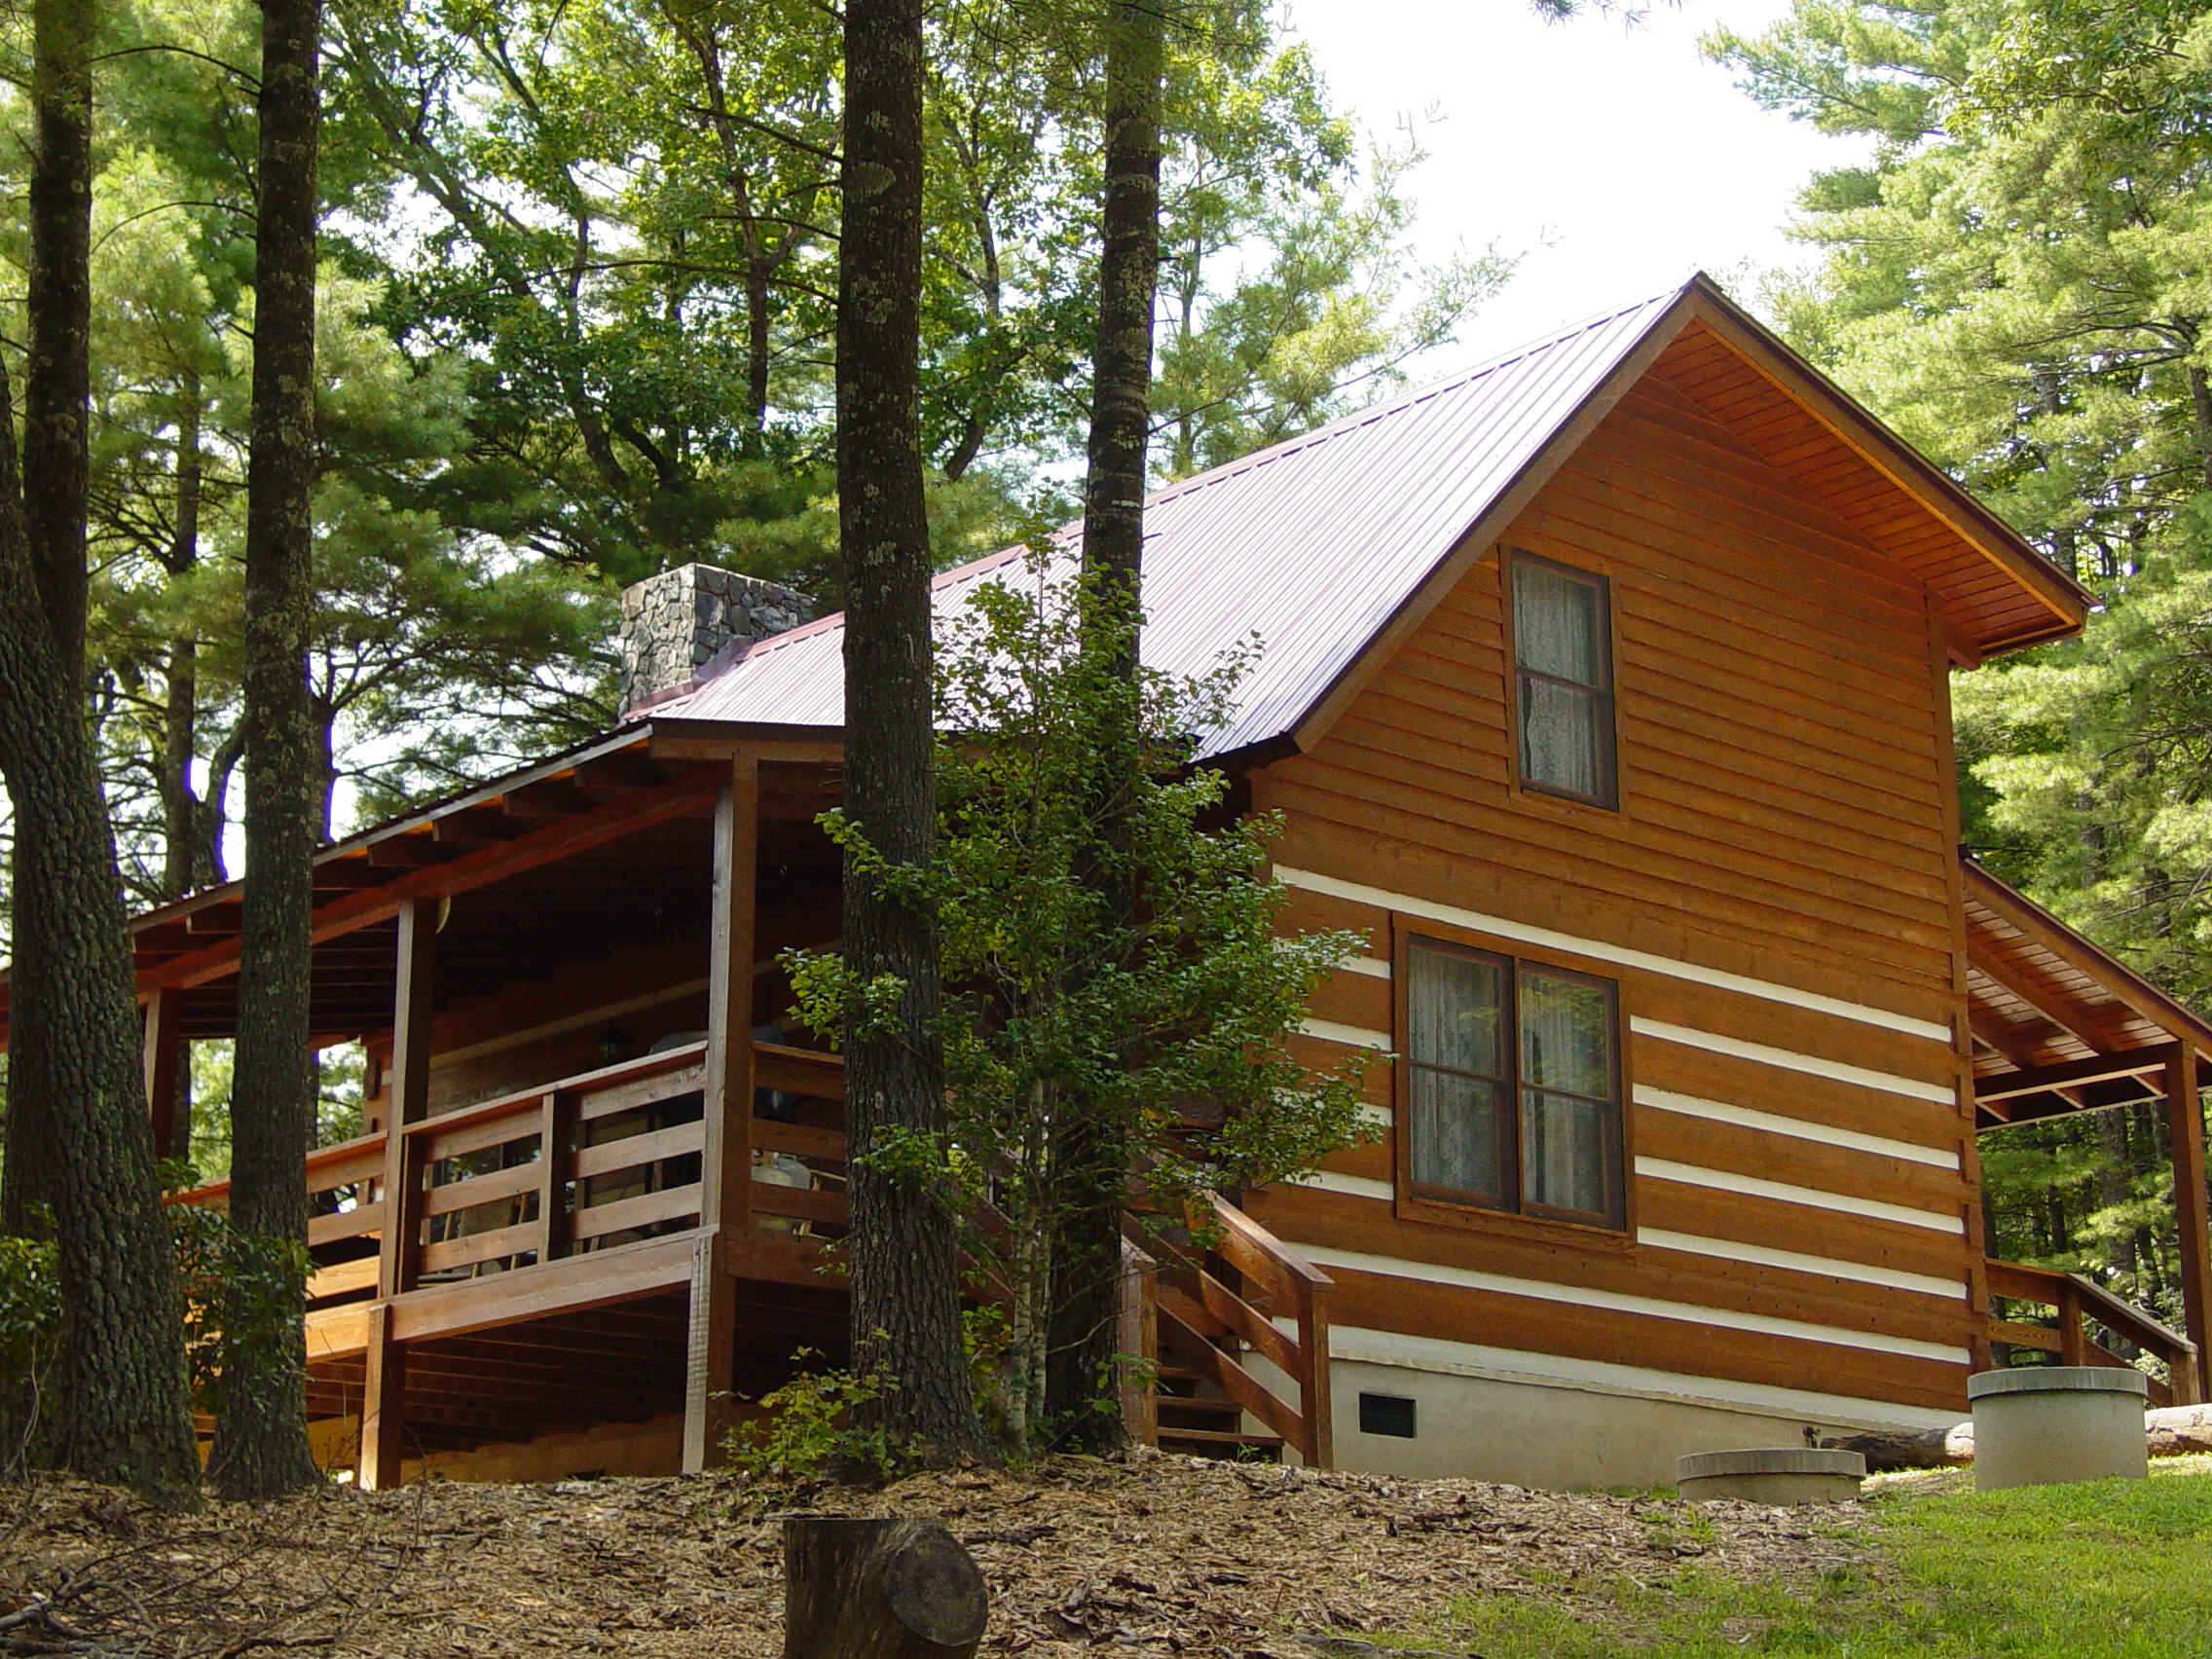 cabin fall creek rentals listing falls cottages cozy cabins